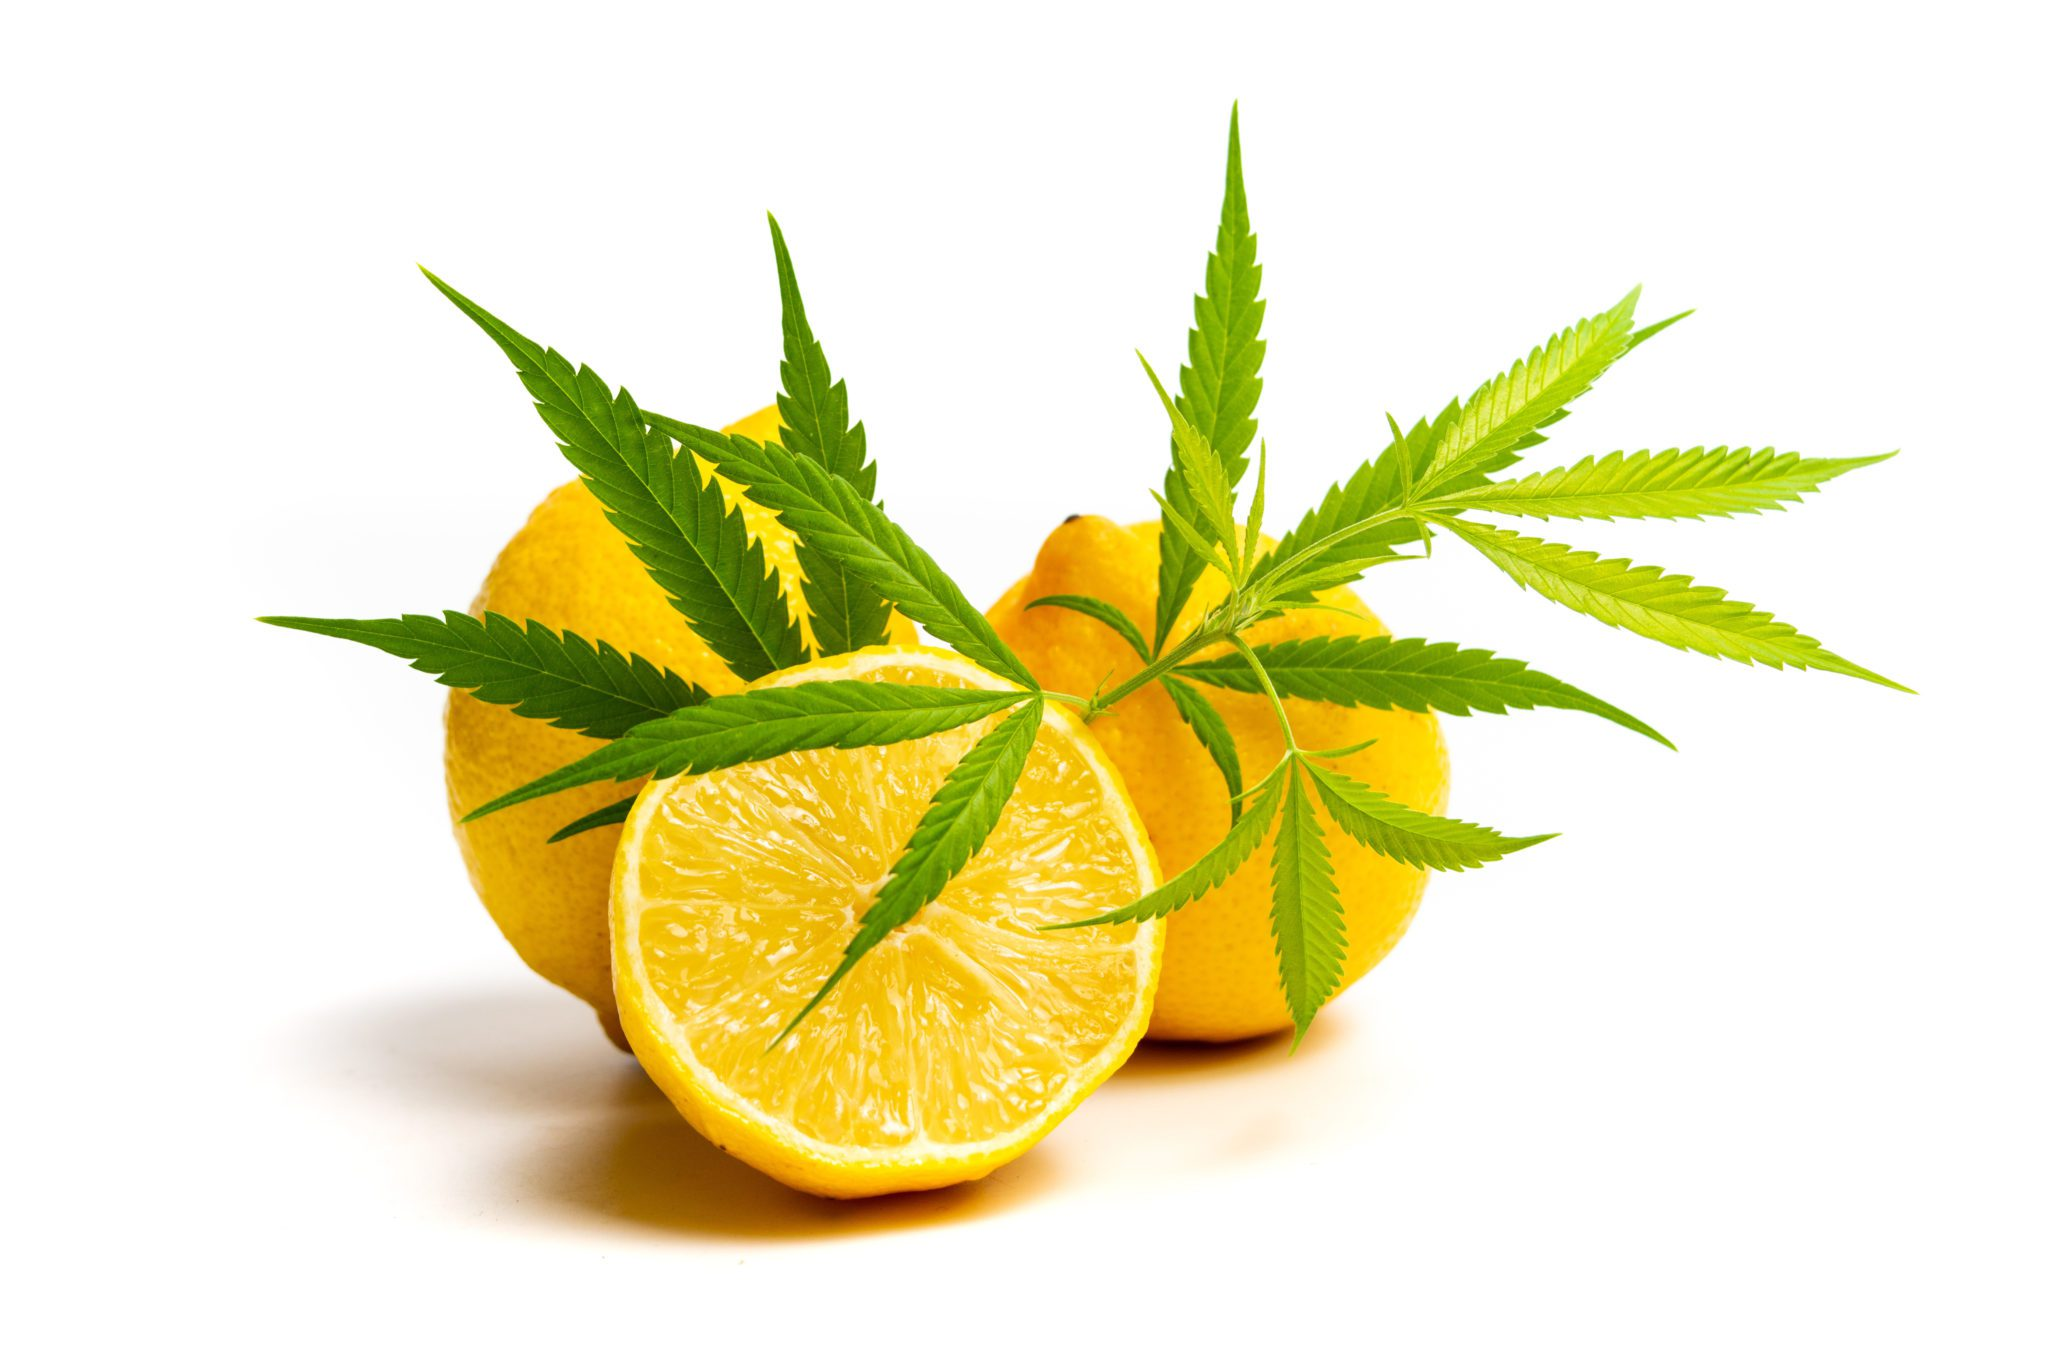 Marijuana leaf and lemon isolated